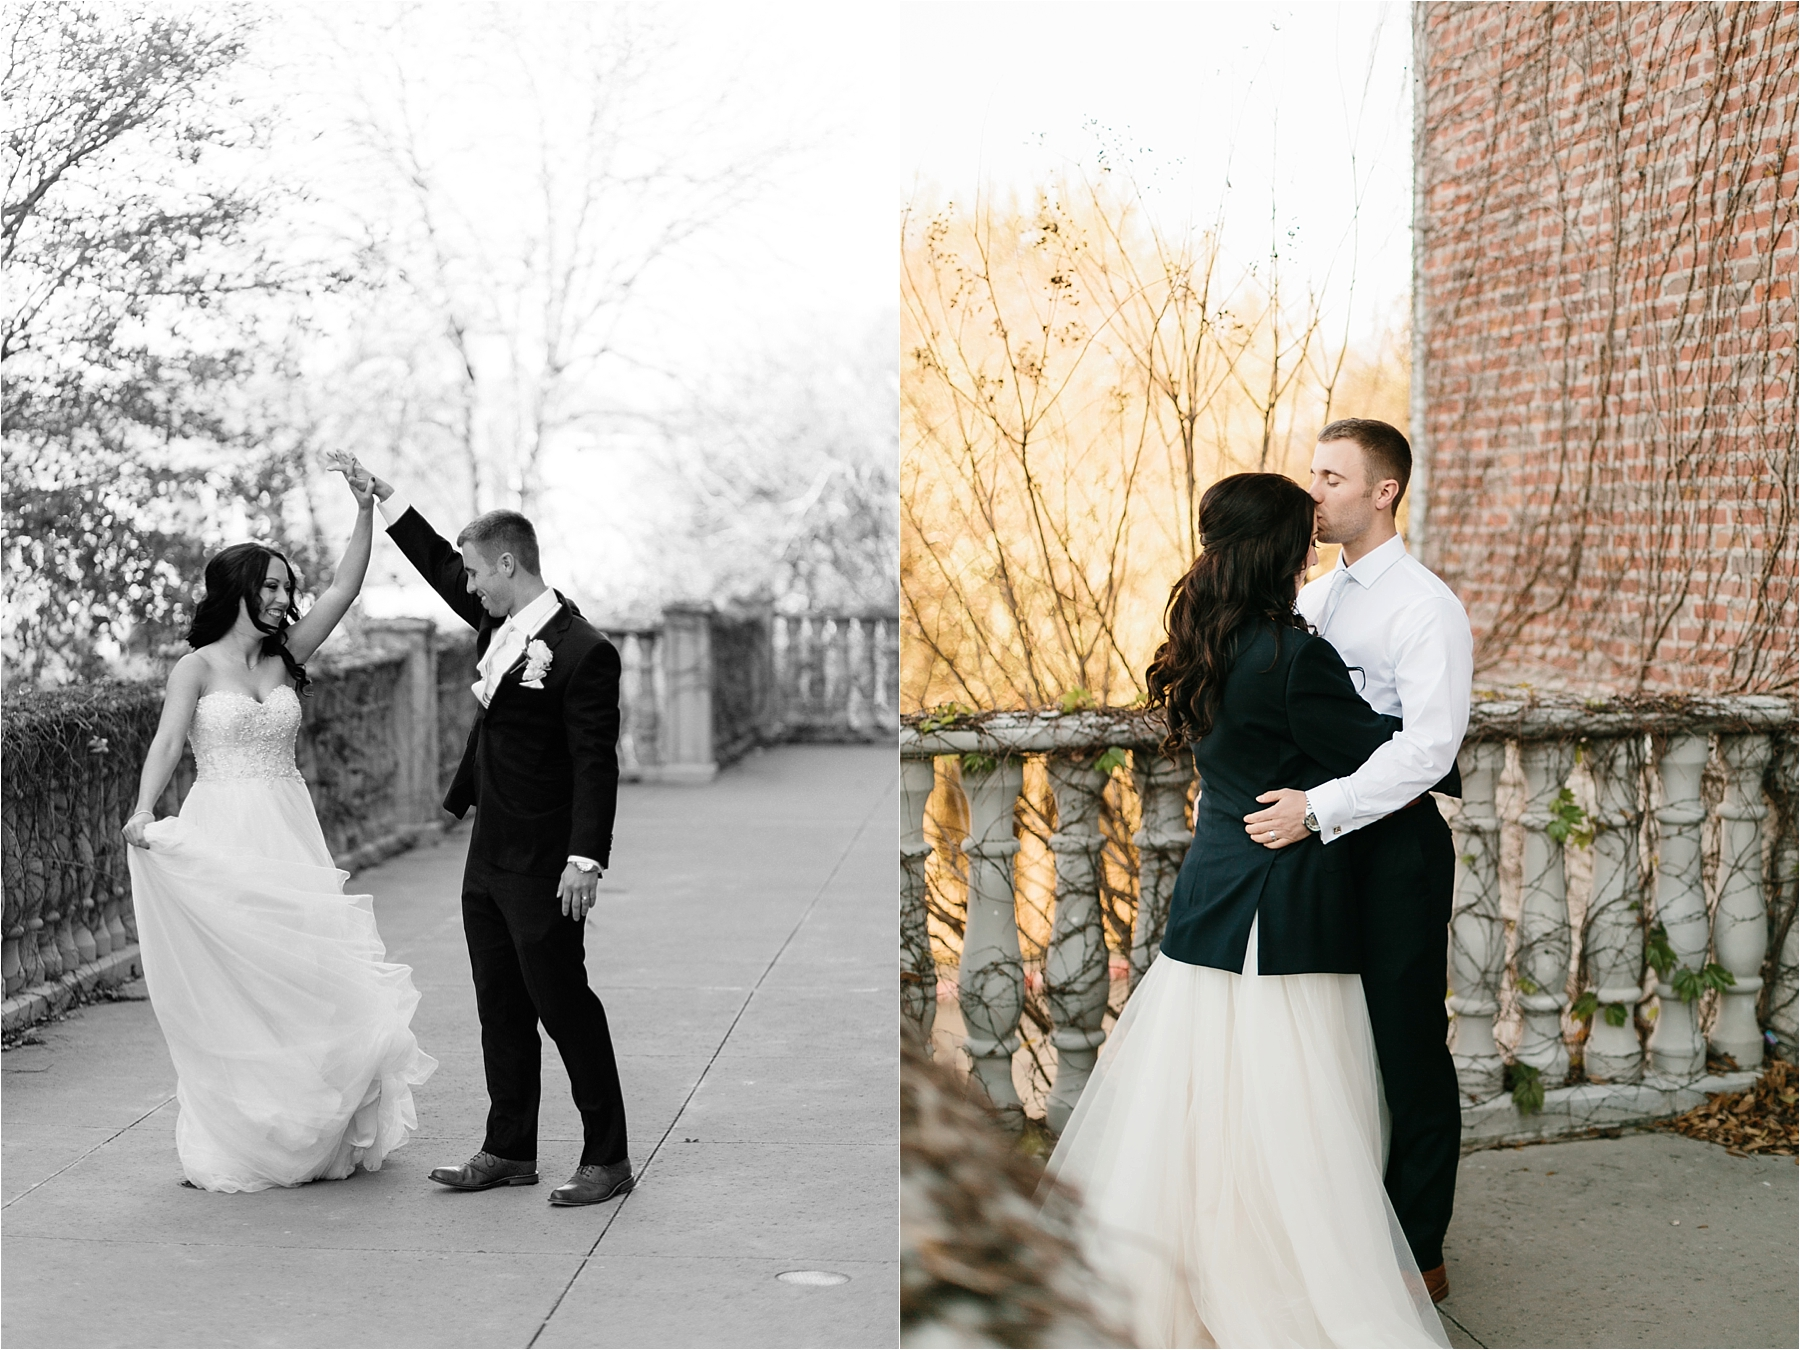 Chrissy + Zach __ The Windsor at Hebron Park Wedding by North Texas Wedding Photographer _ Rachel Meagan Photography __061